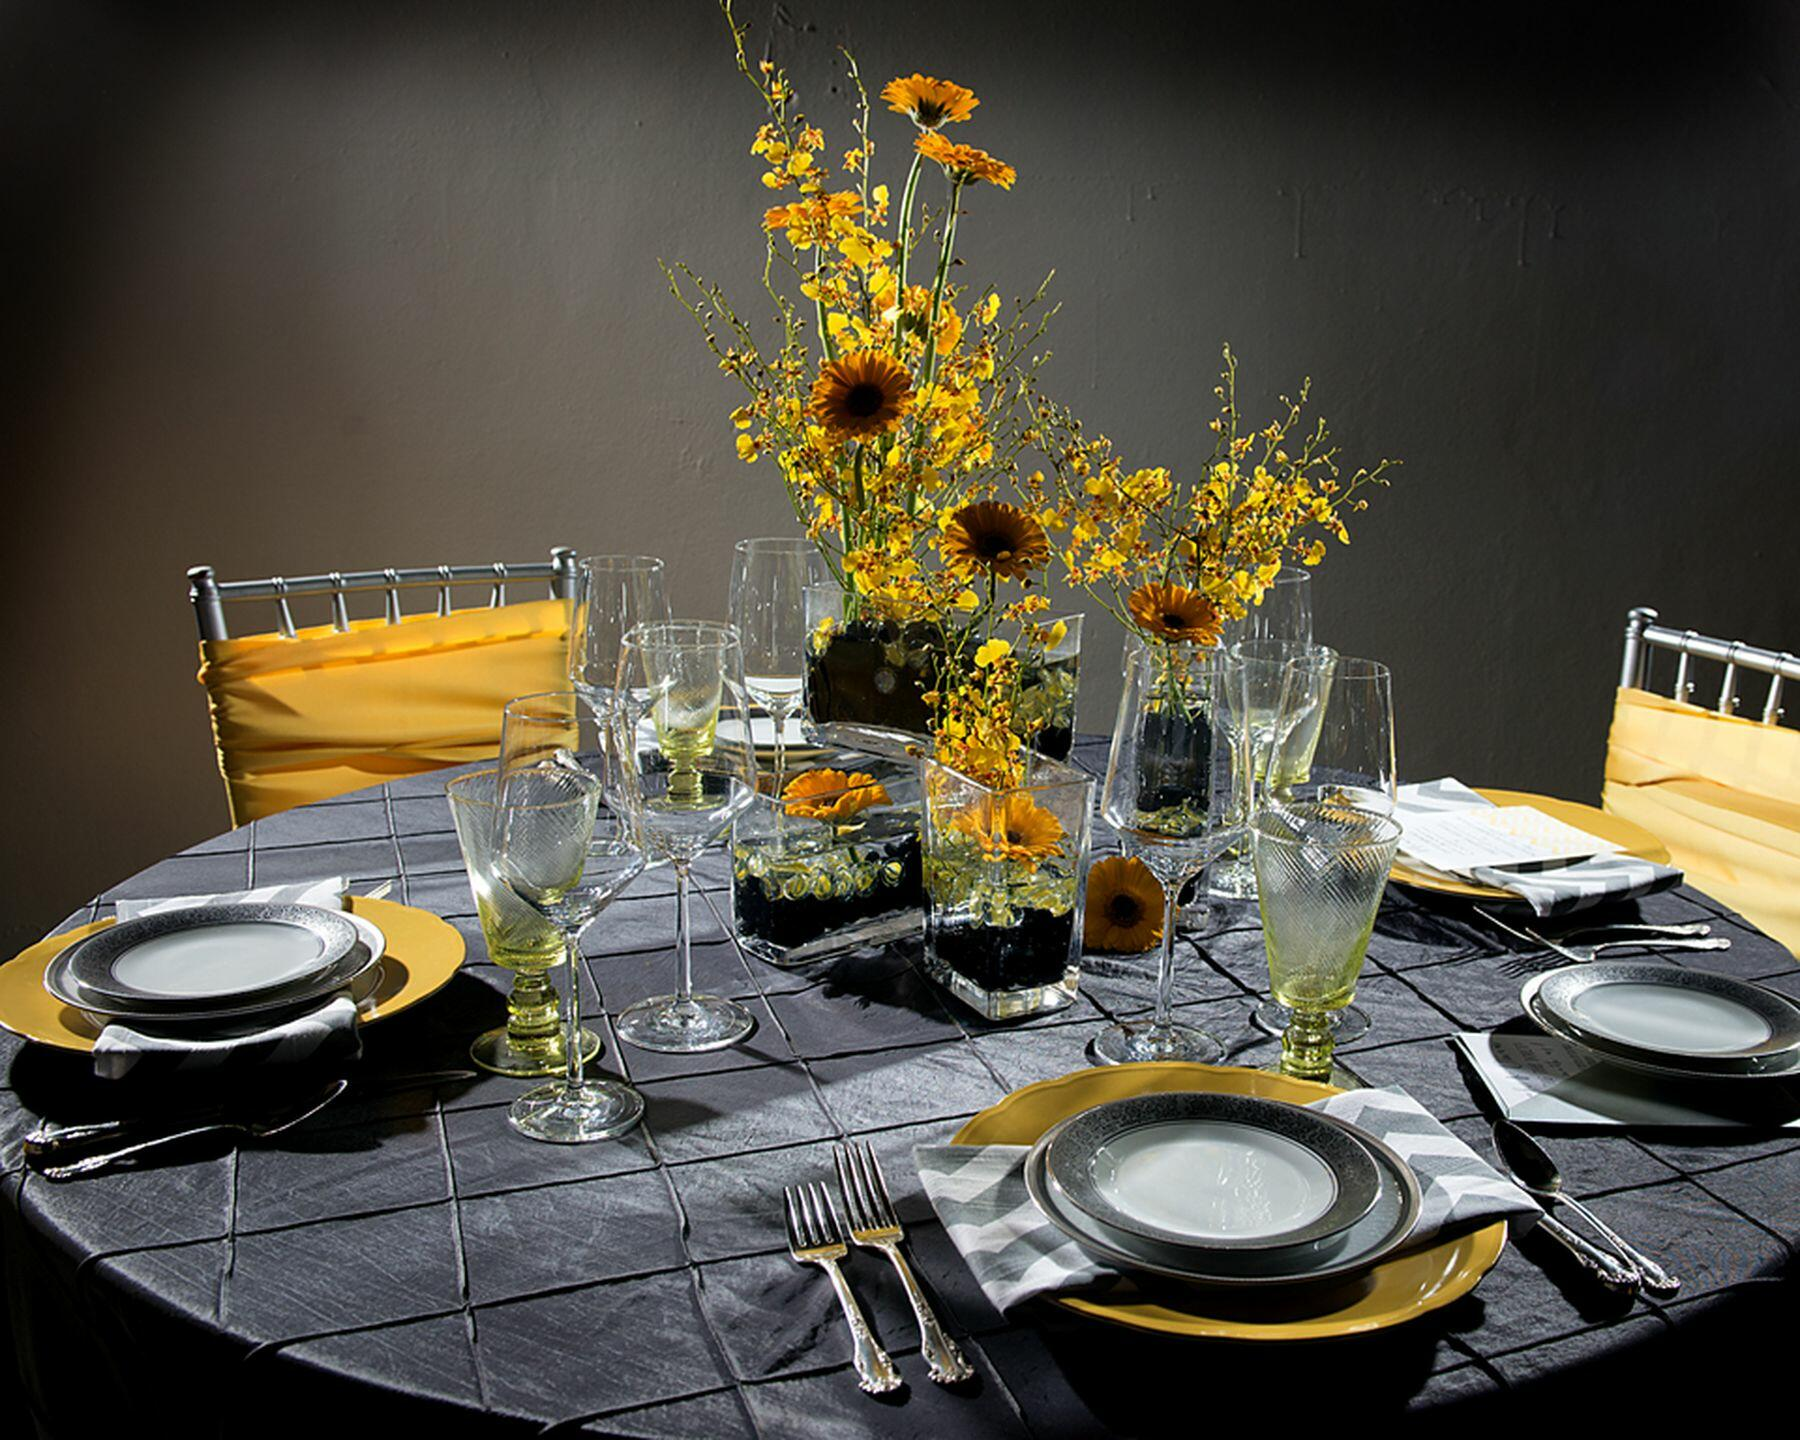 Place settings on restaurant table